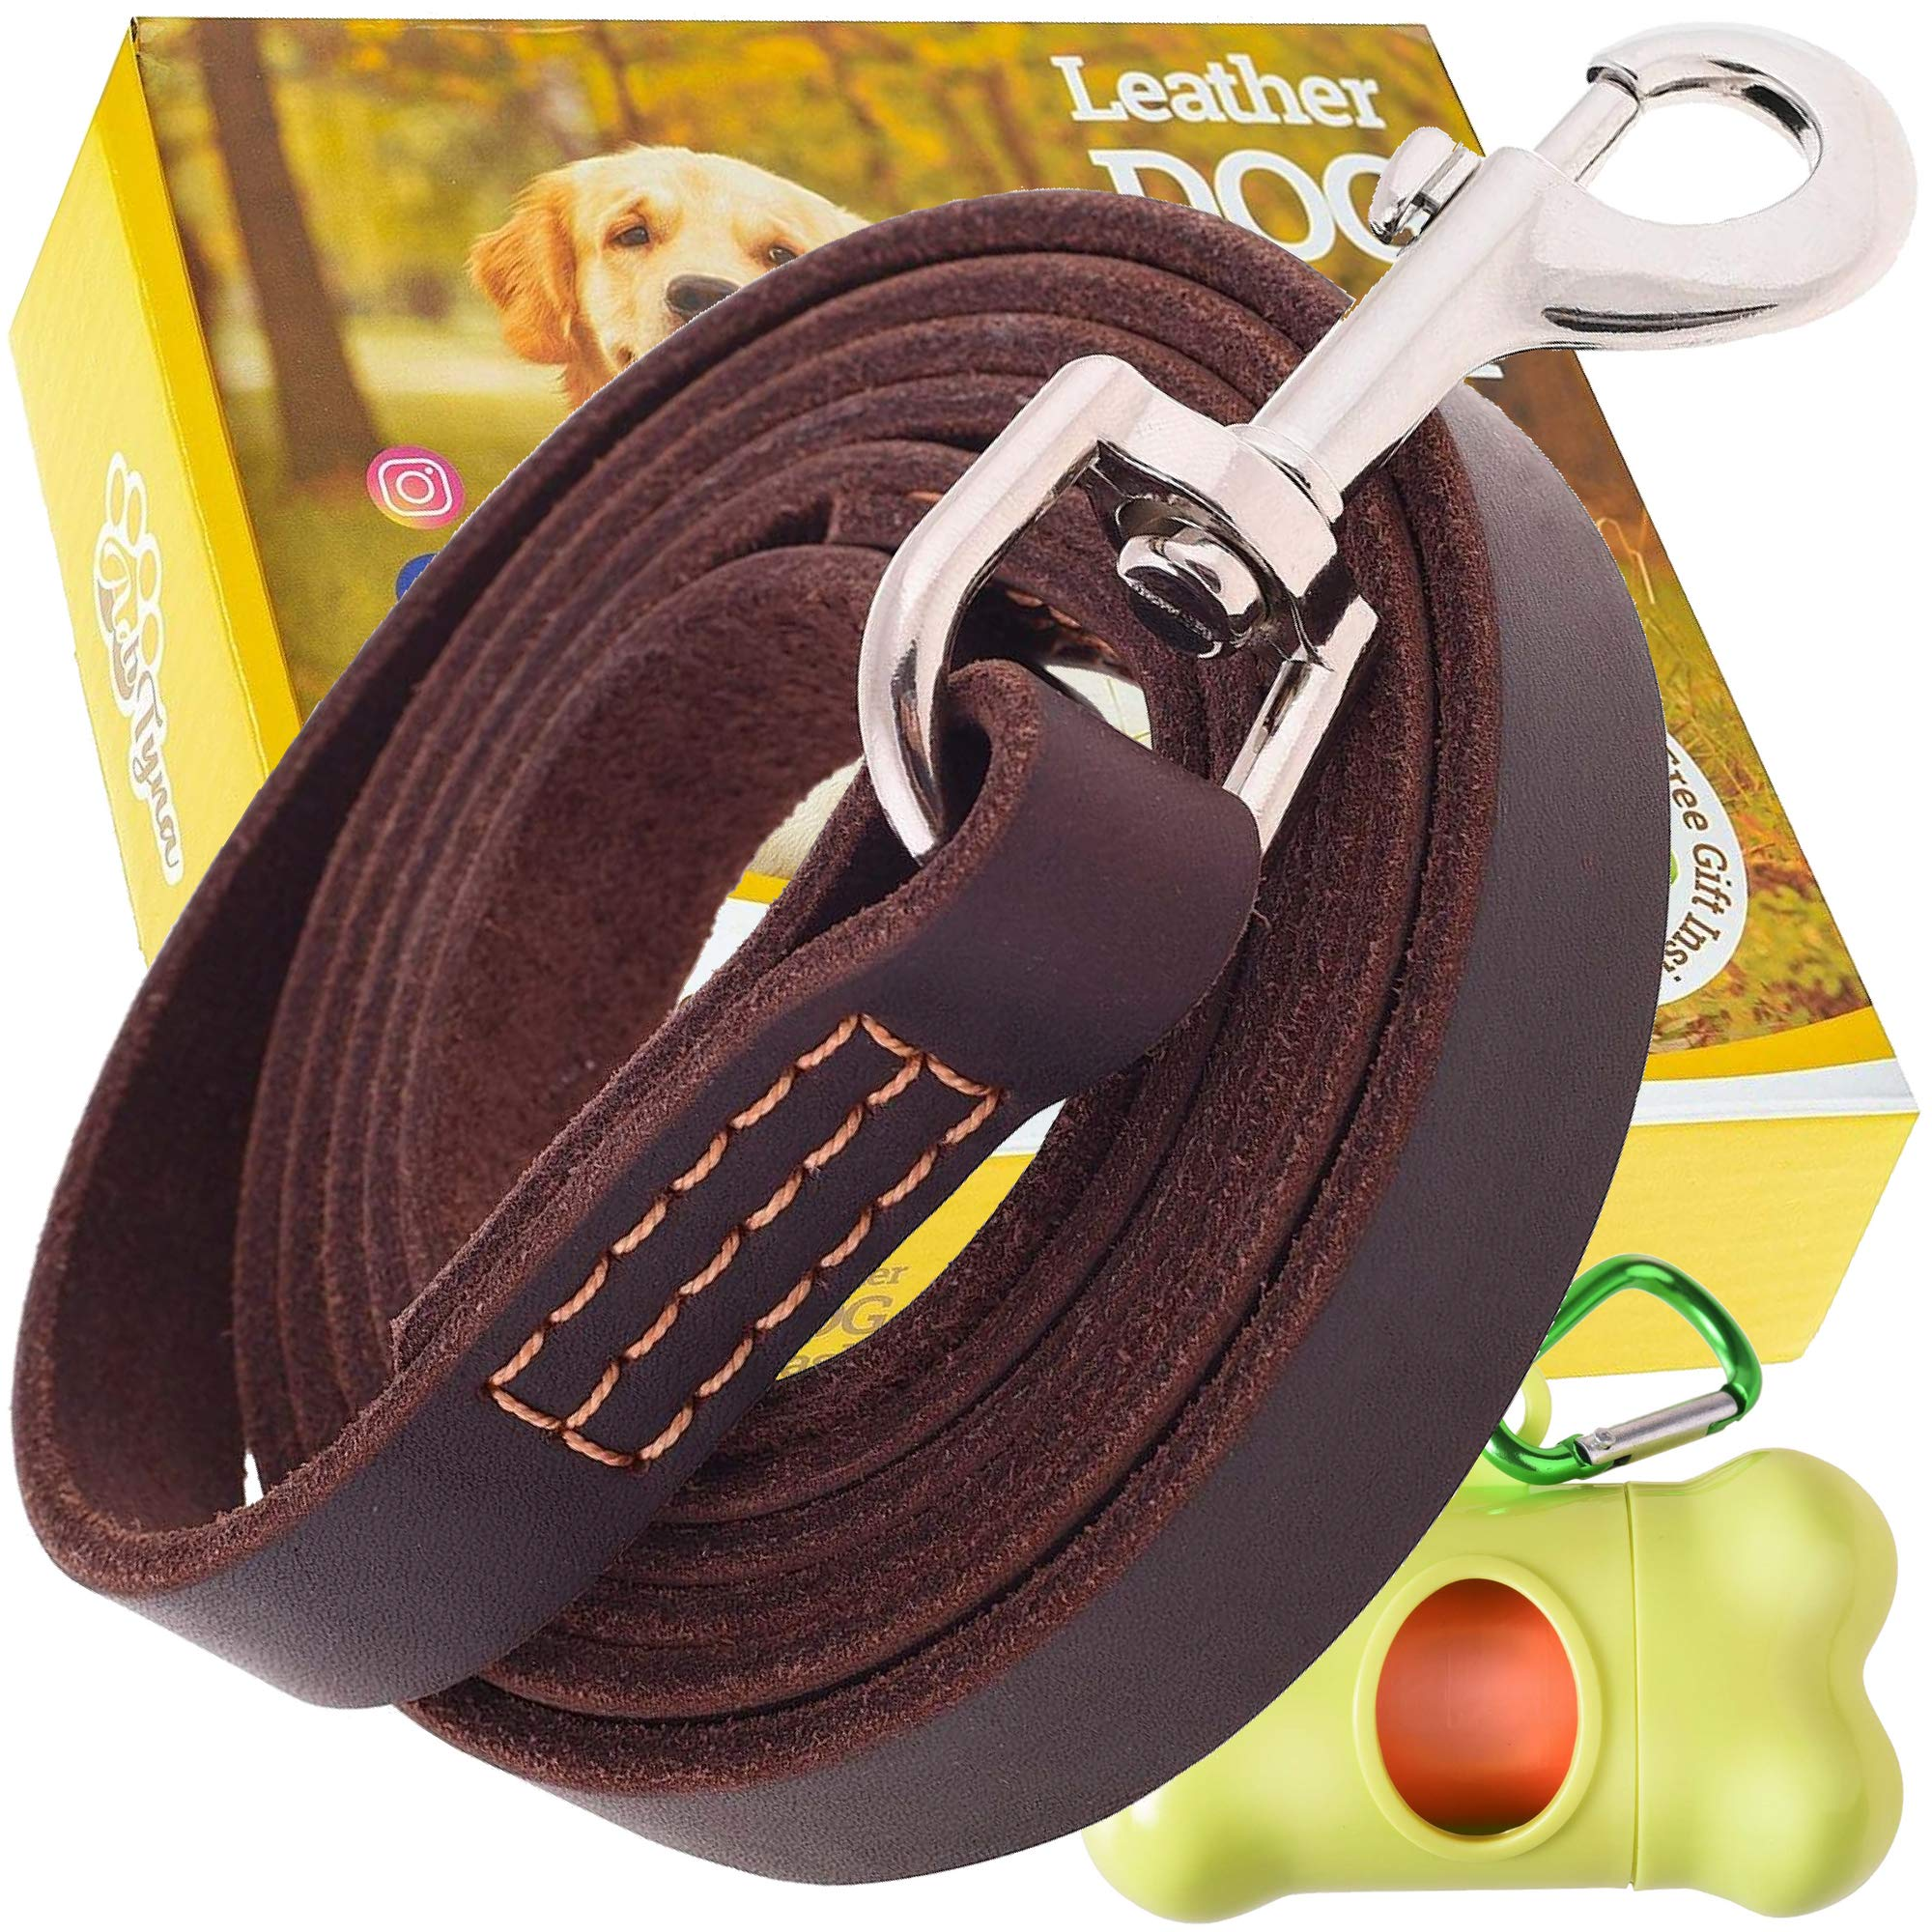 ADITYNA Leather Dog Leash 6 foot x 3/4 inch - Leather Leash for Large or Medium Dogs - Perfect for Walking and Training - Heavy Duty Dog Leash Leather (Brown)